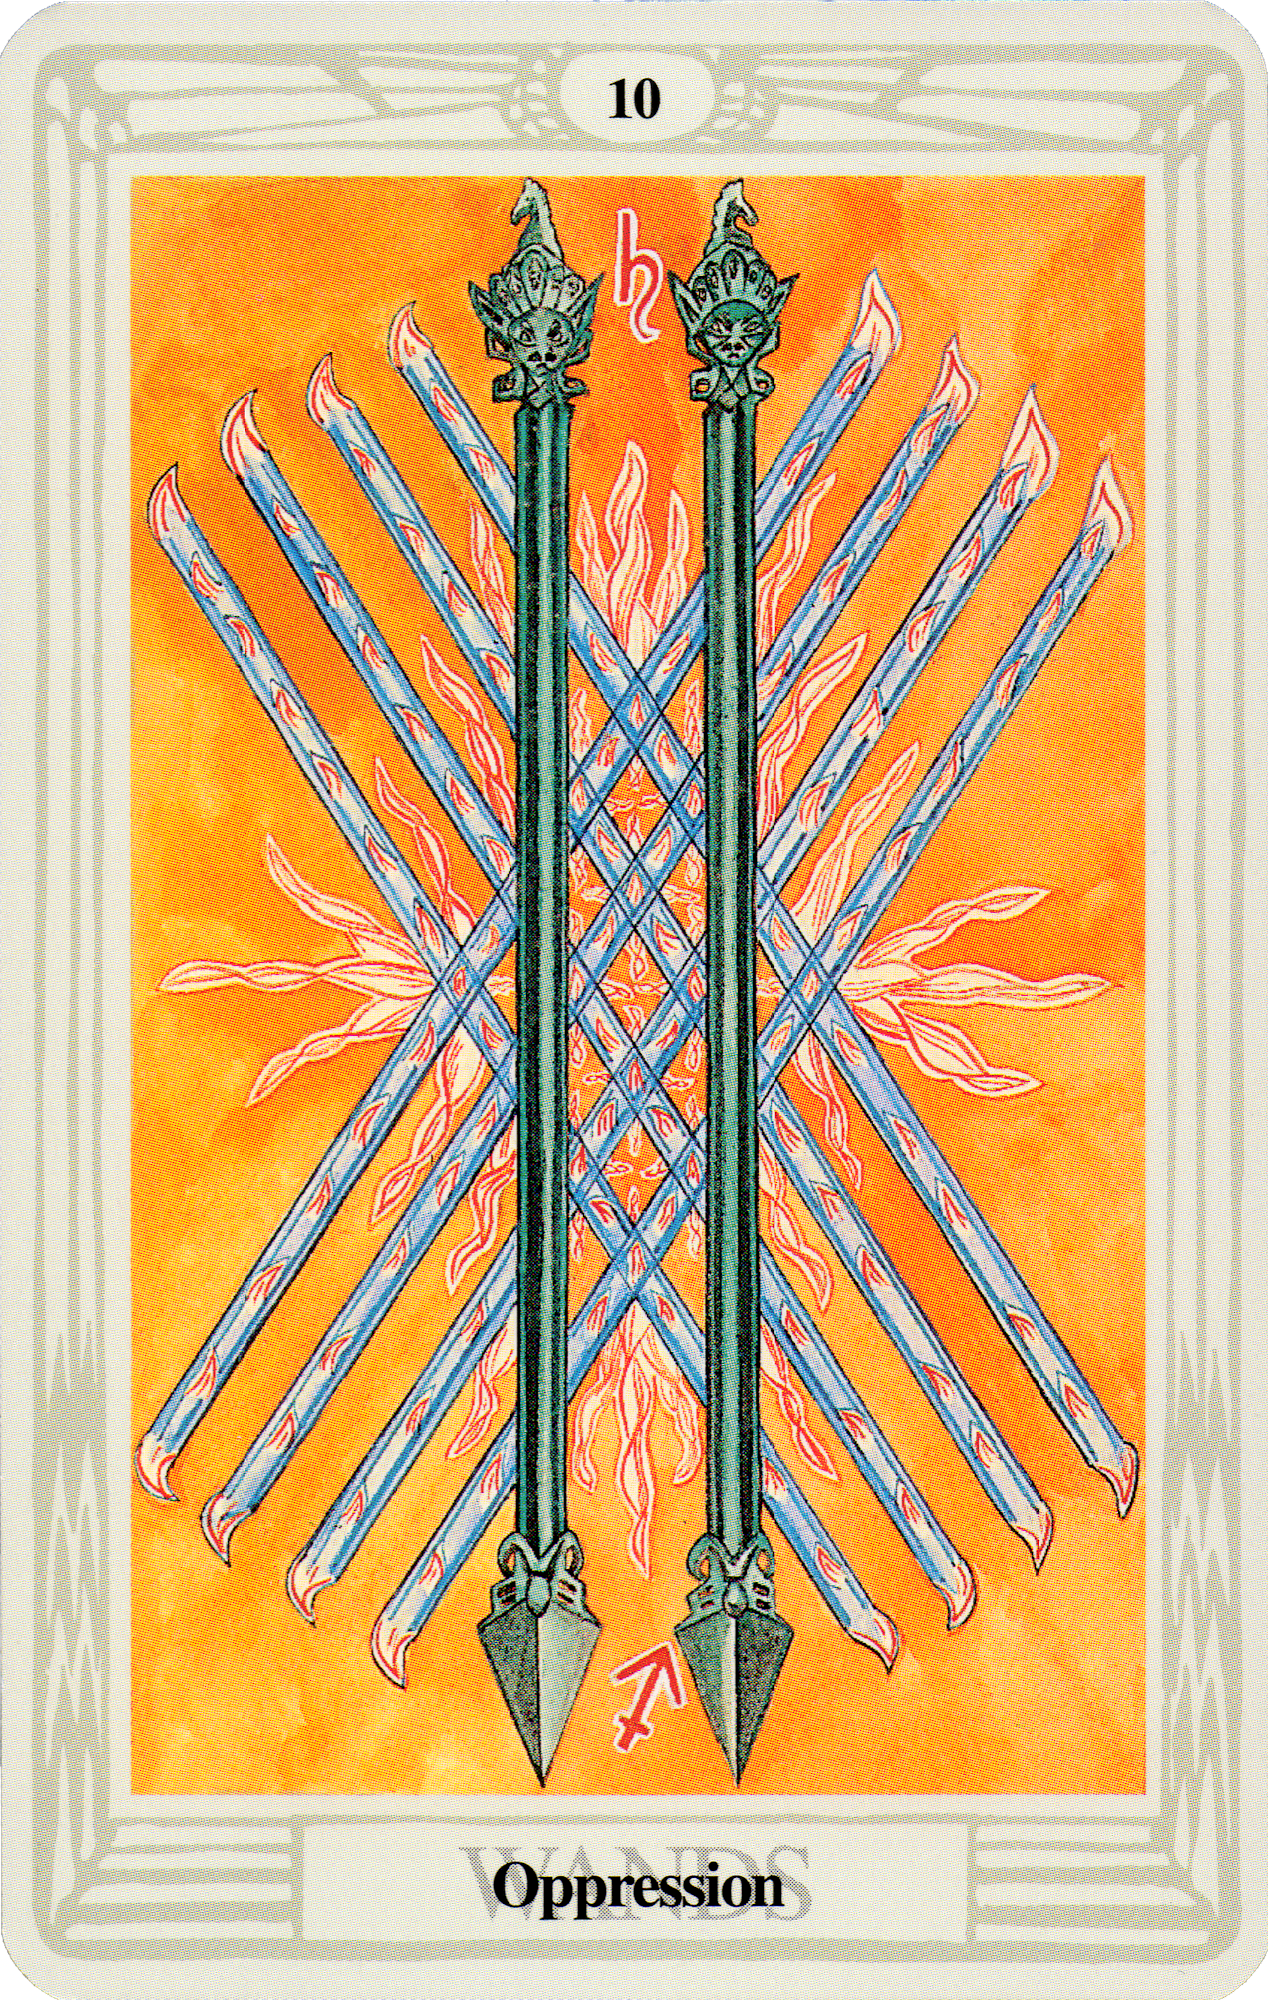 Belle Constantinne - Nine of Wands - The Thoth Deck by Aleister Crowley